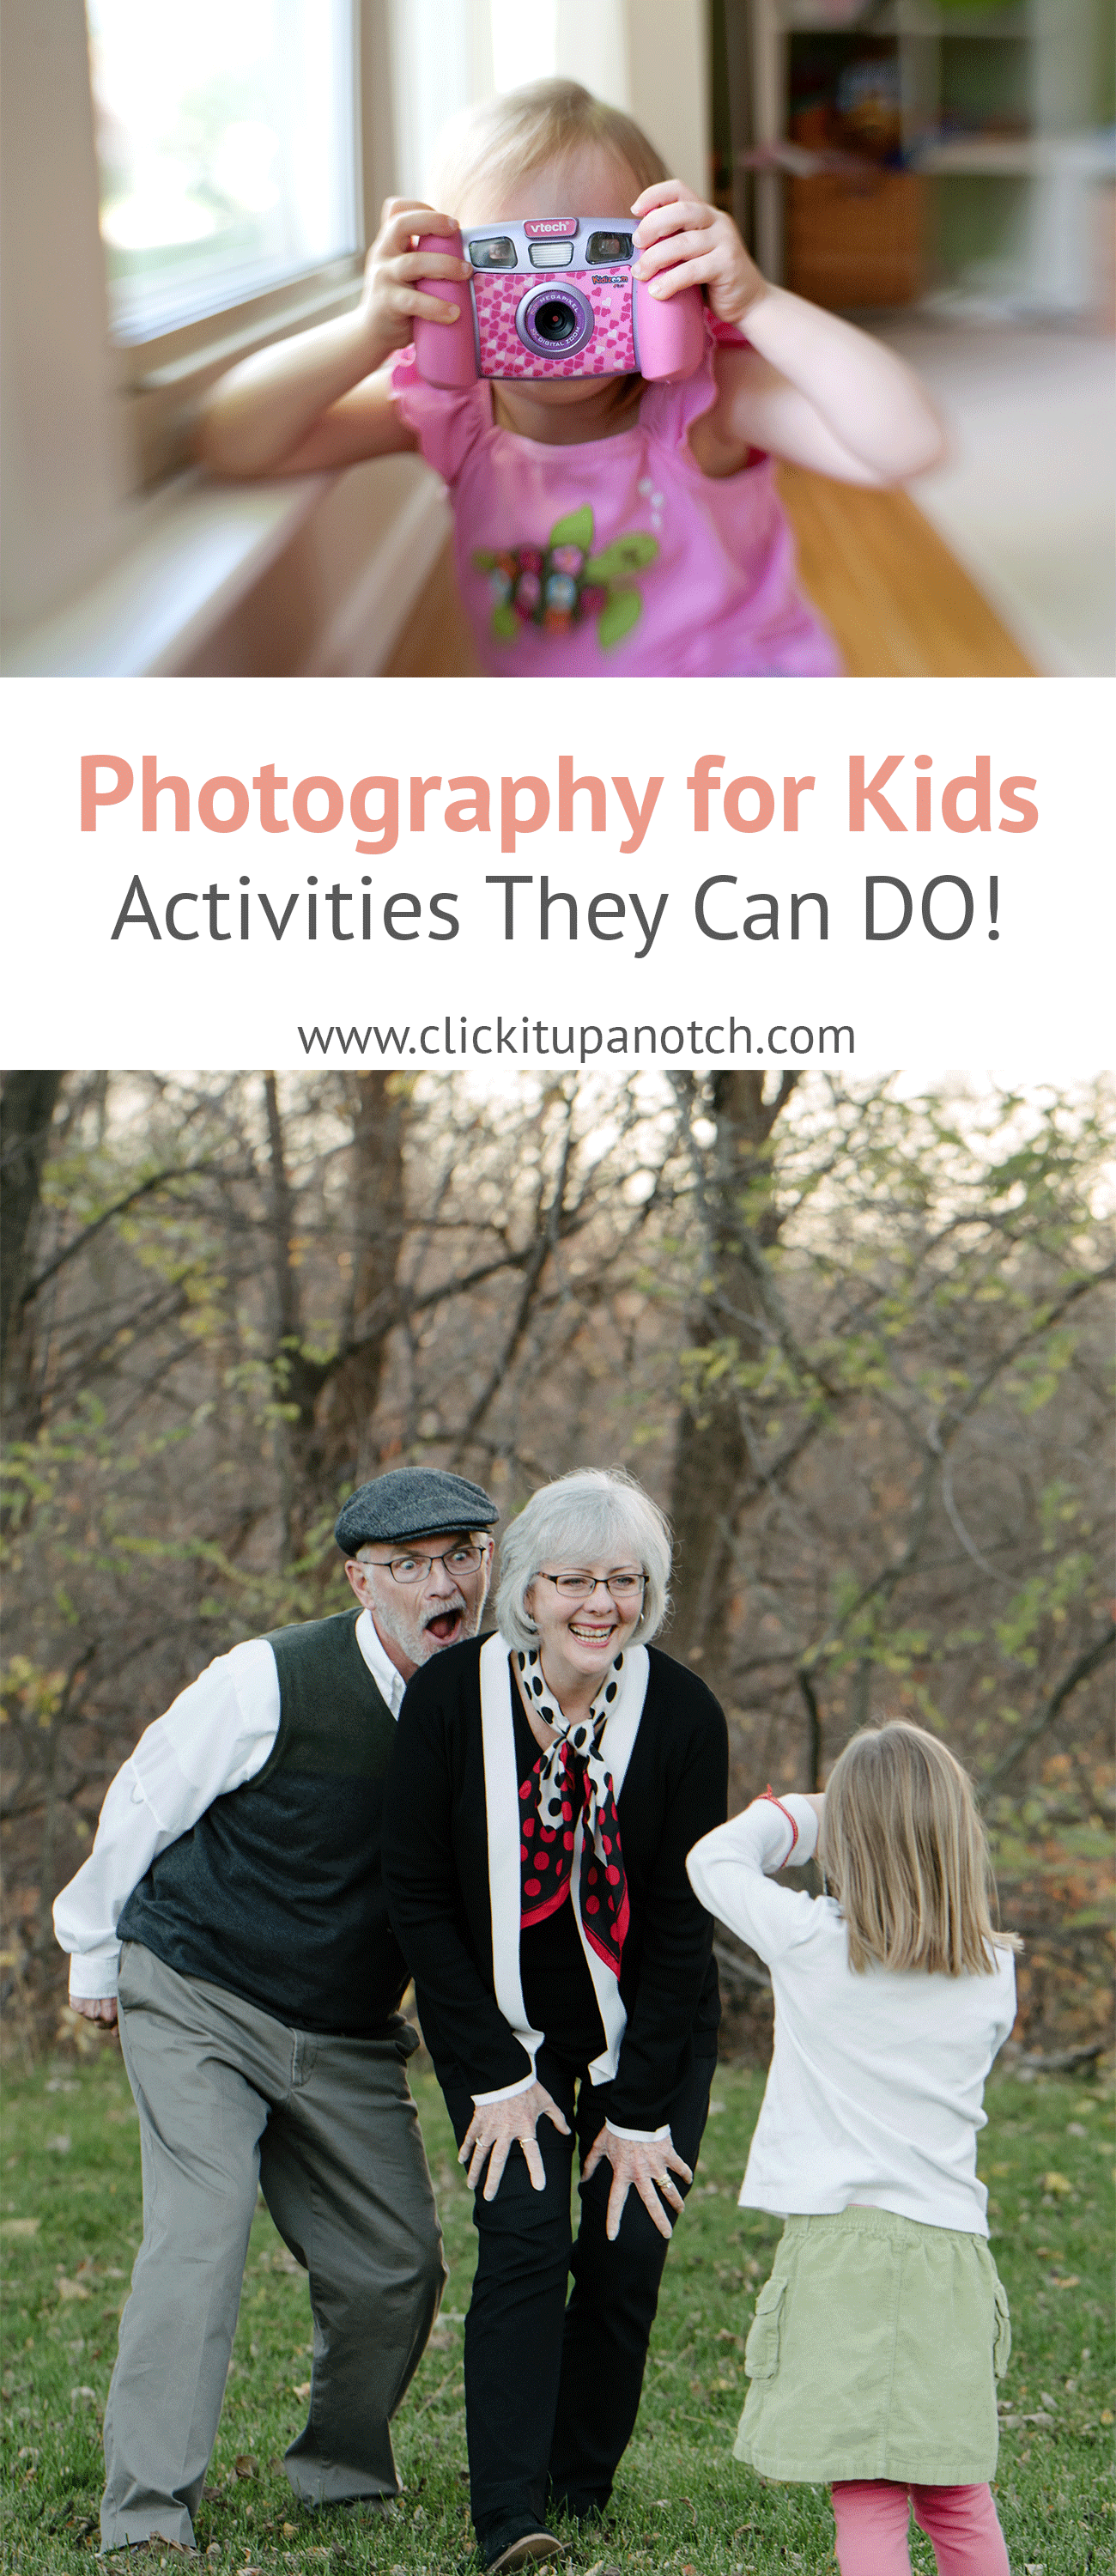 Photography activities for kids broken down by ages! Yes, an easy to follow directions for kids to tackle photography projects and learn photography.